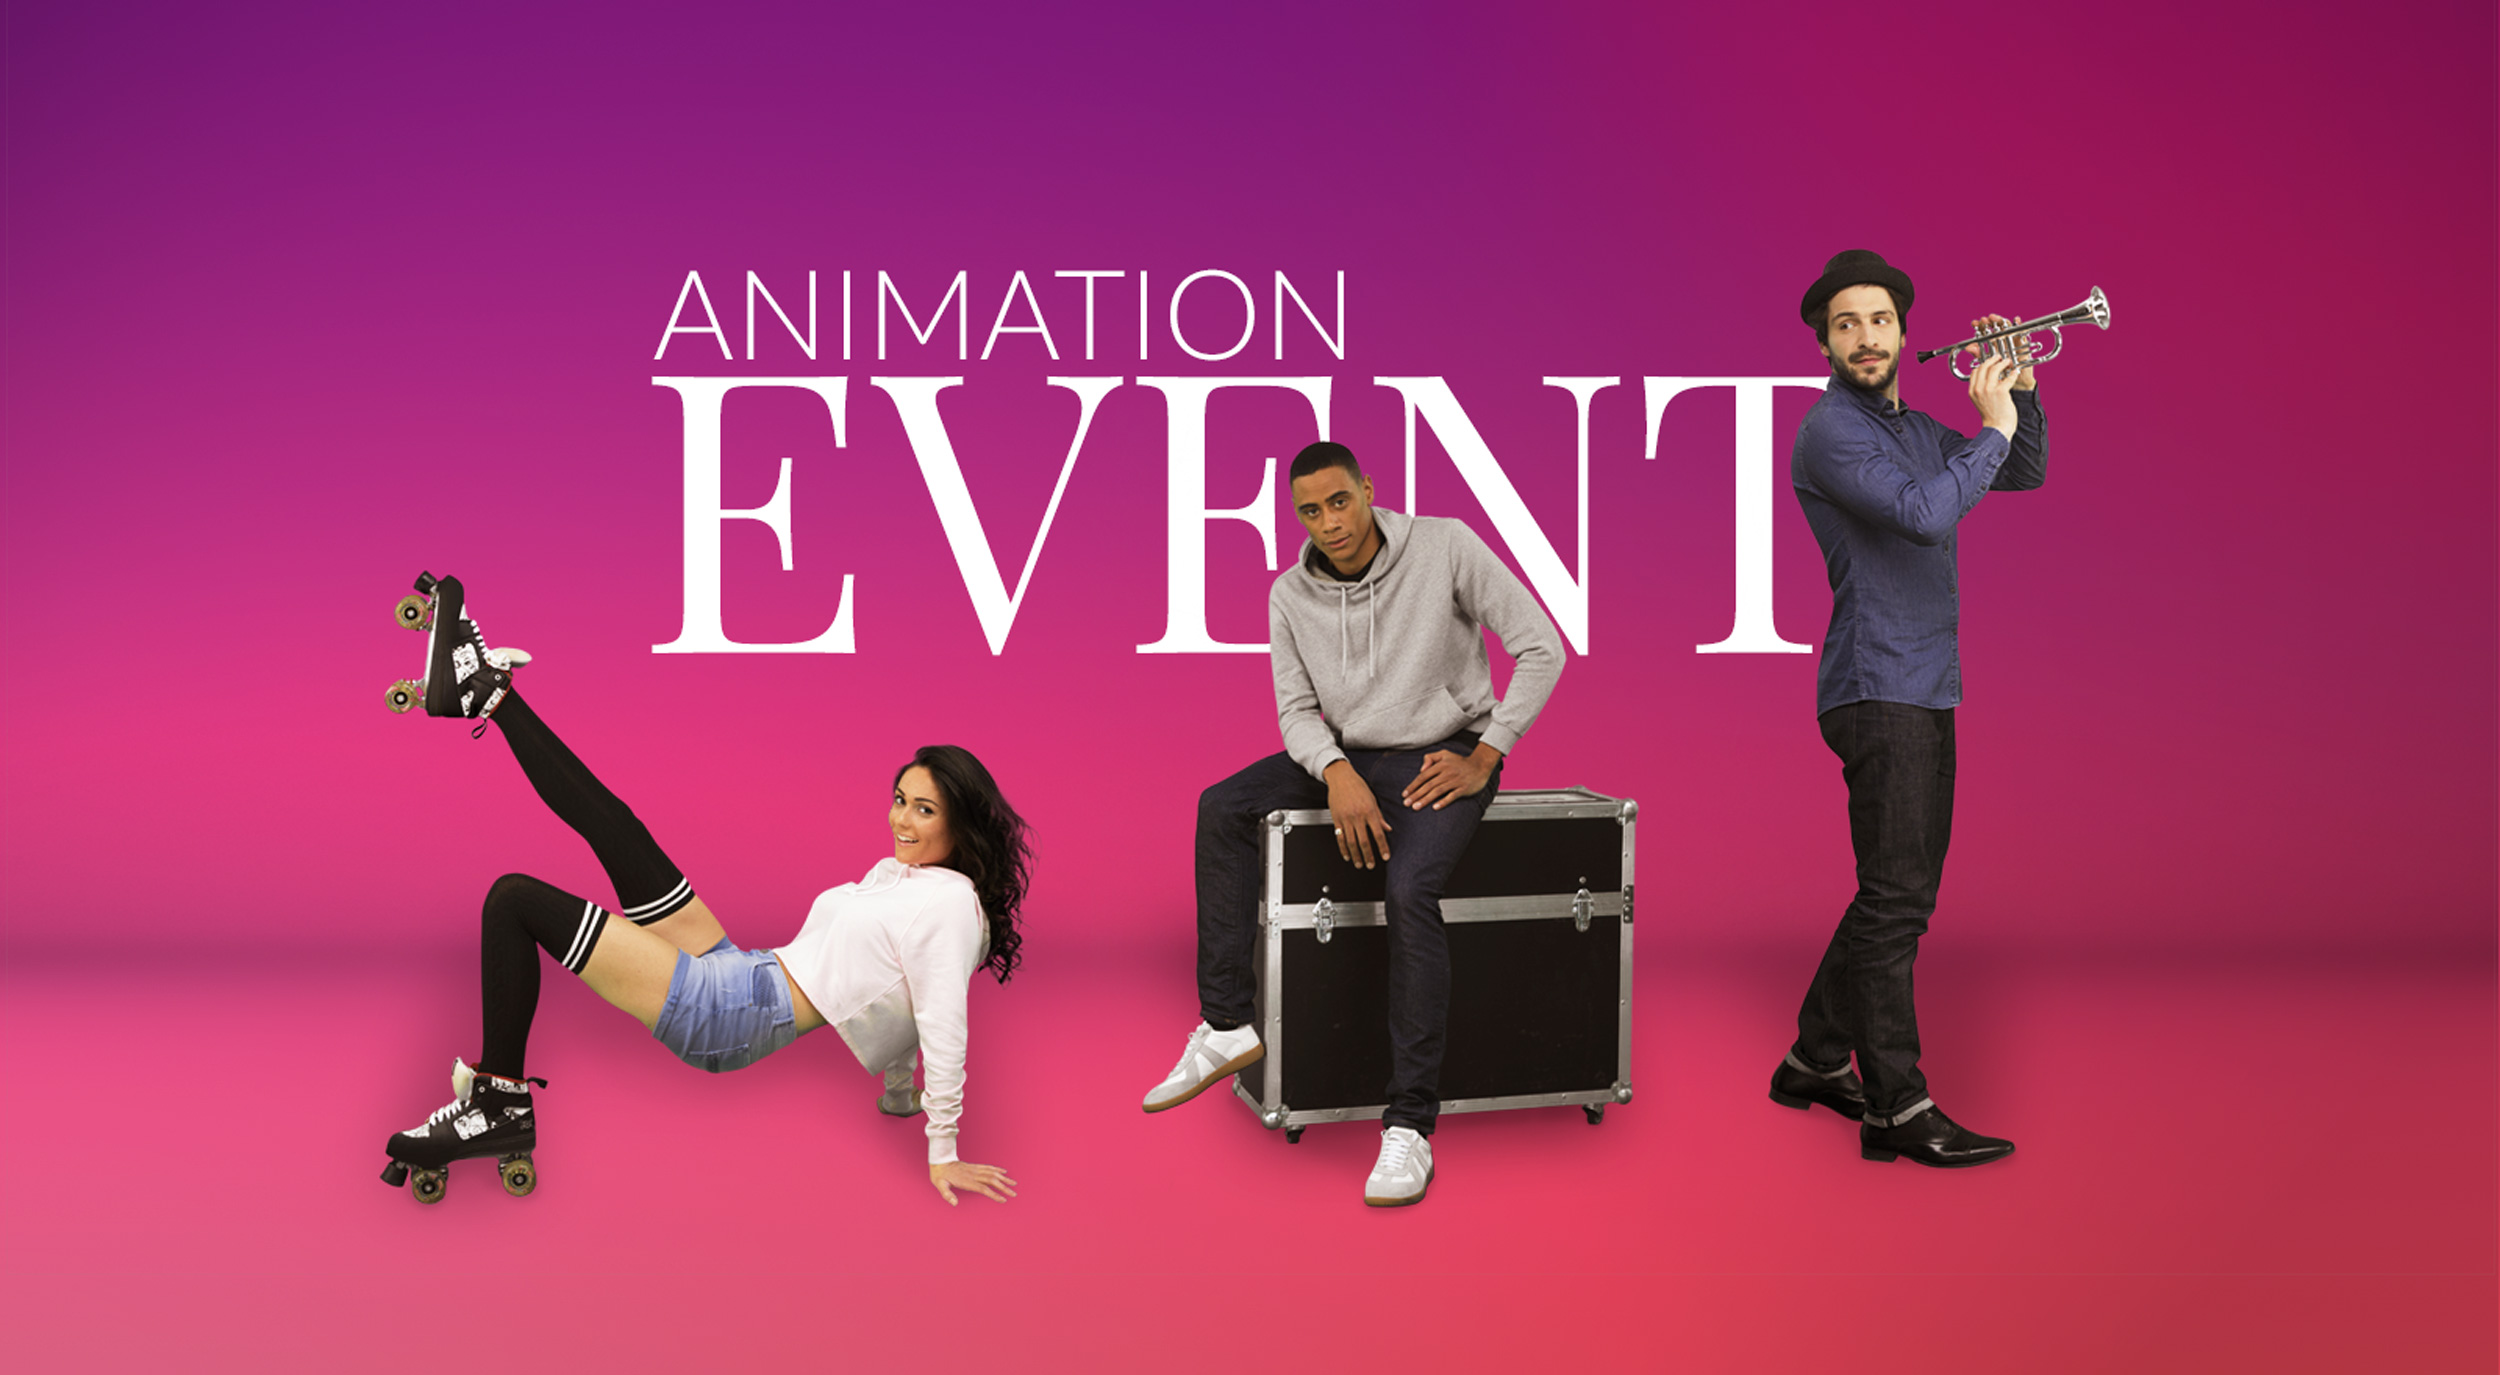 Animation Evenementielle - Animeo